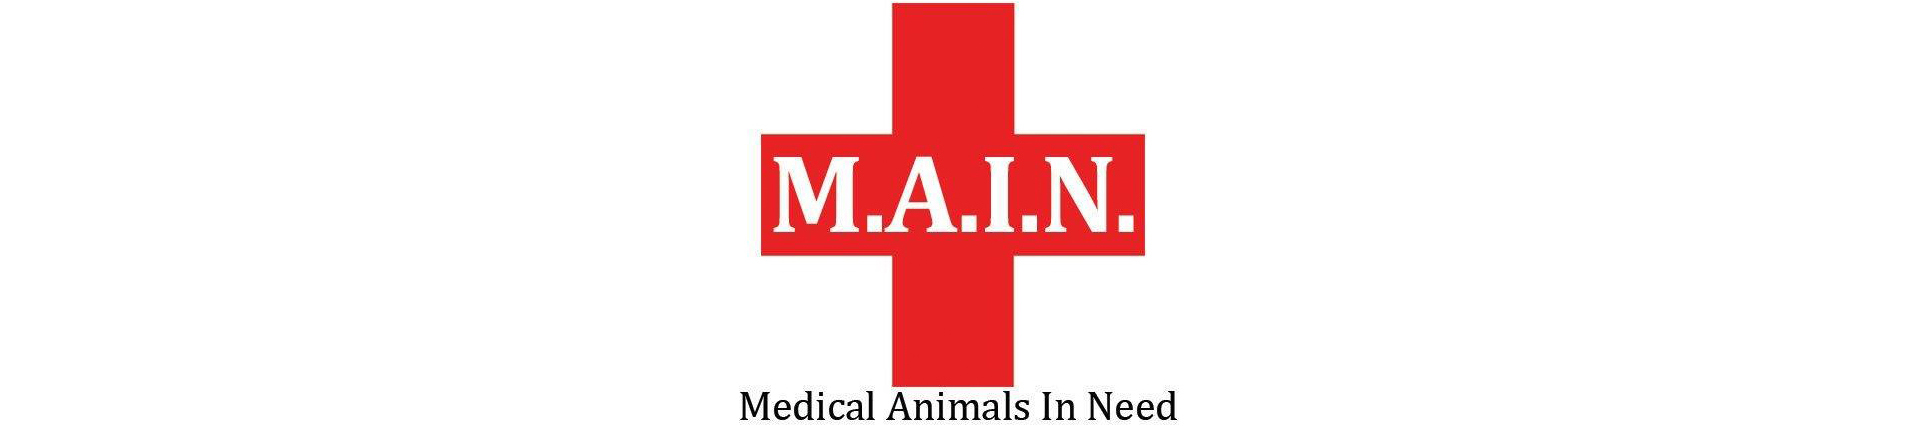 M.A.I.N. – Medical Animals In Need, Dog Rescue in Phoenix Arizona